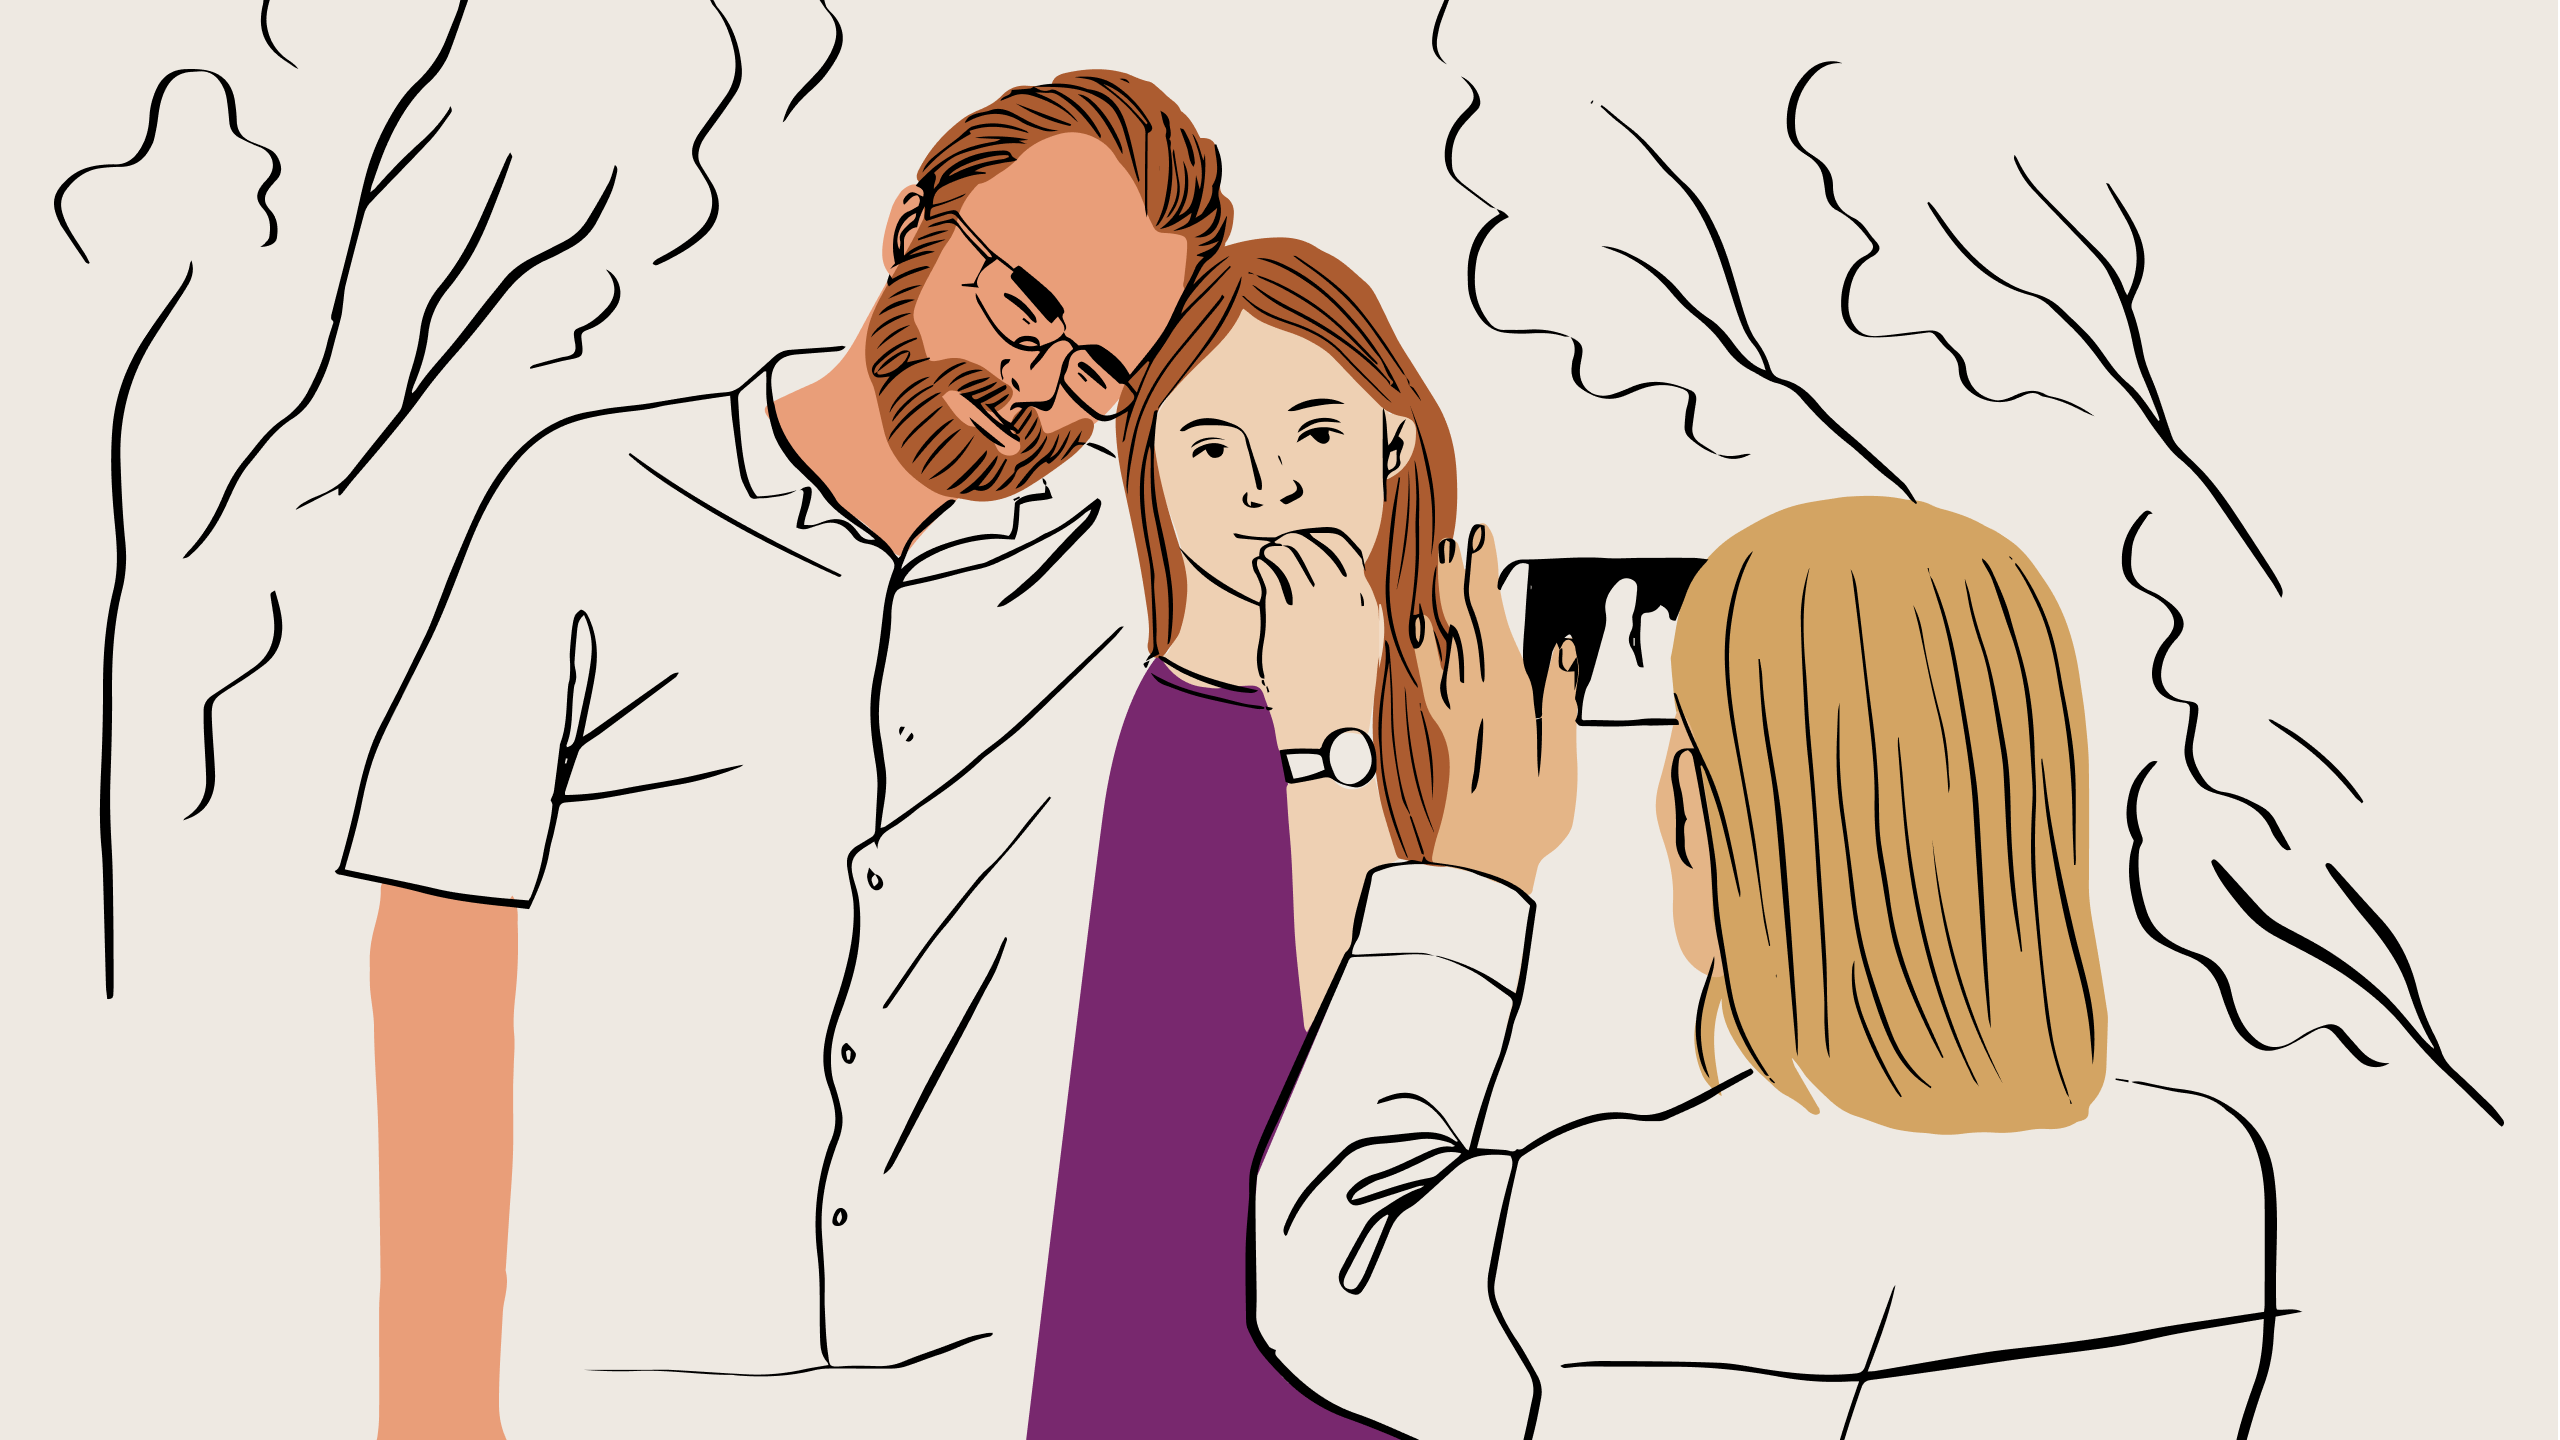 An illustration of a person taking a photo of a couple using a mobile phone